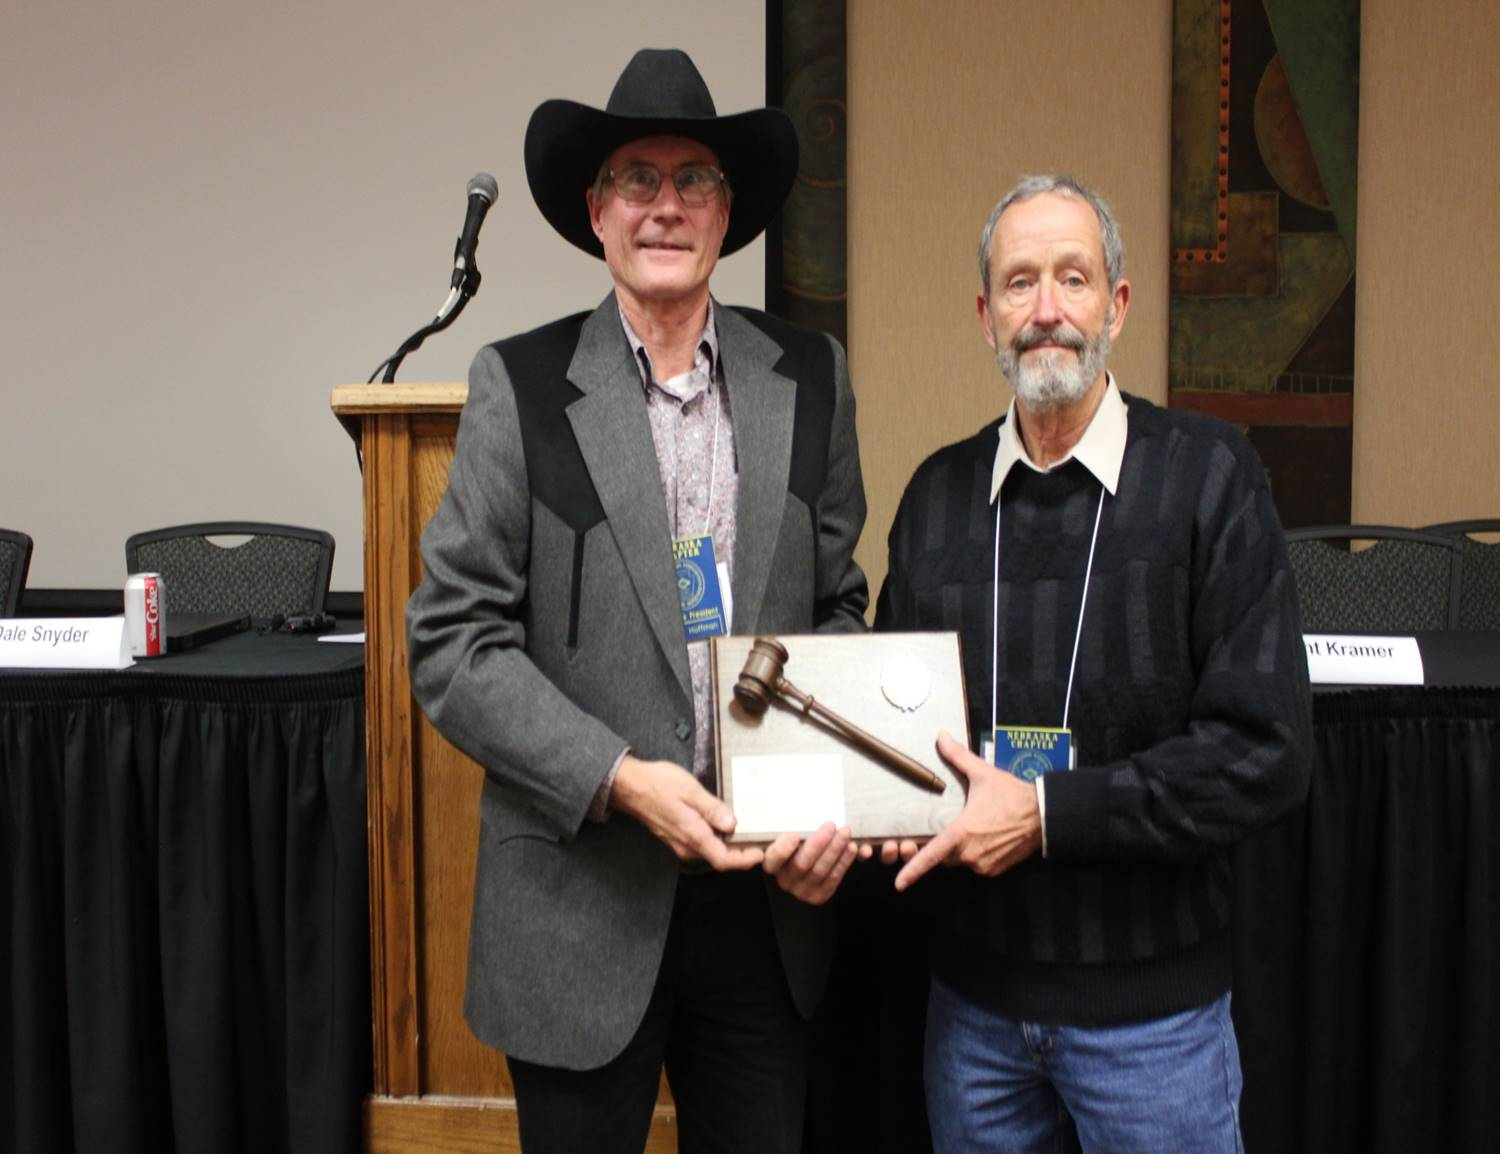 Changing of the guard. New President Bruce Hoffman awarding a thank you plaque to Willie Nelson with a hearty thank you for the leadership over the past year.. Safe travels Willie!